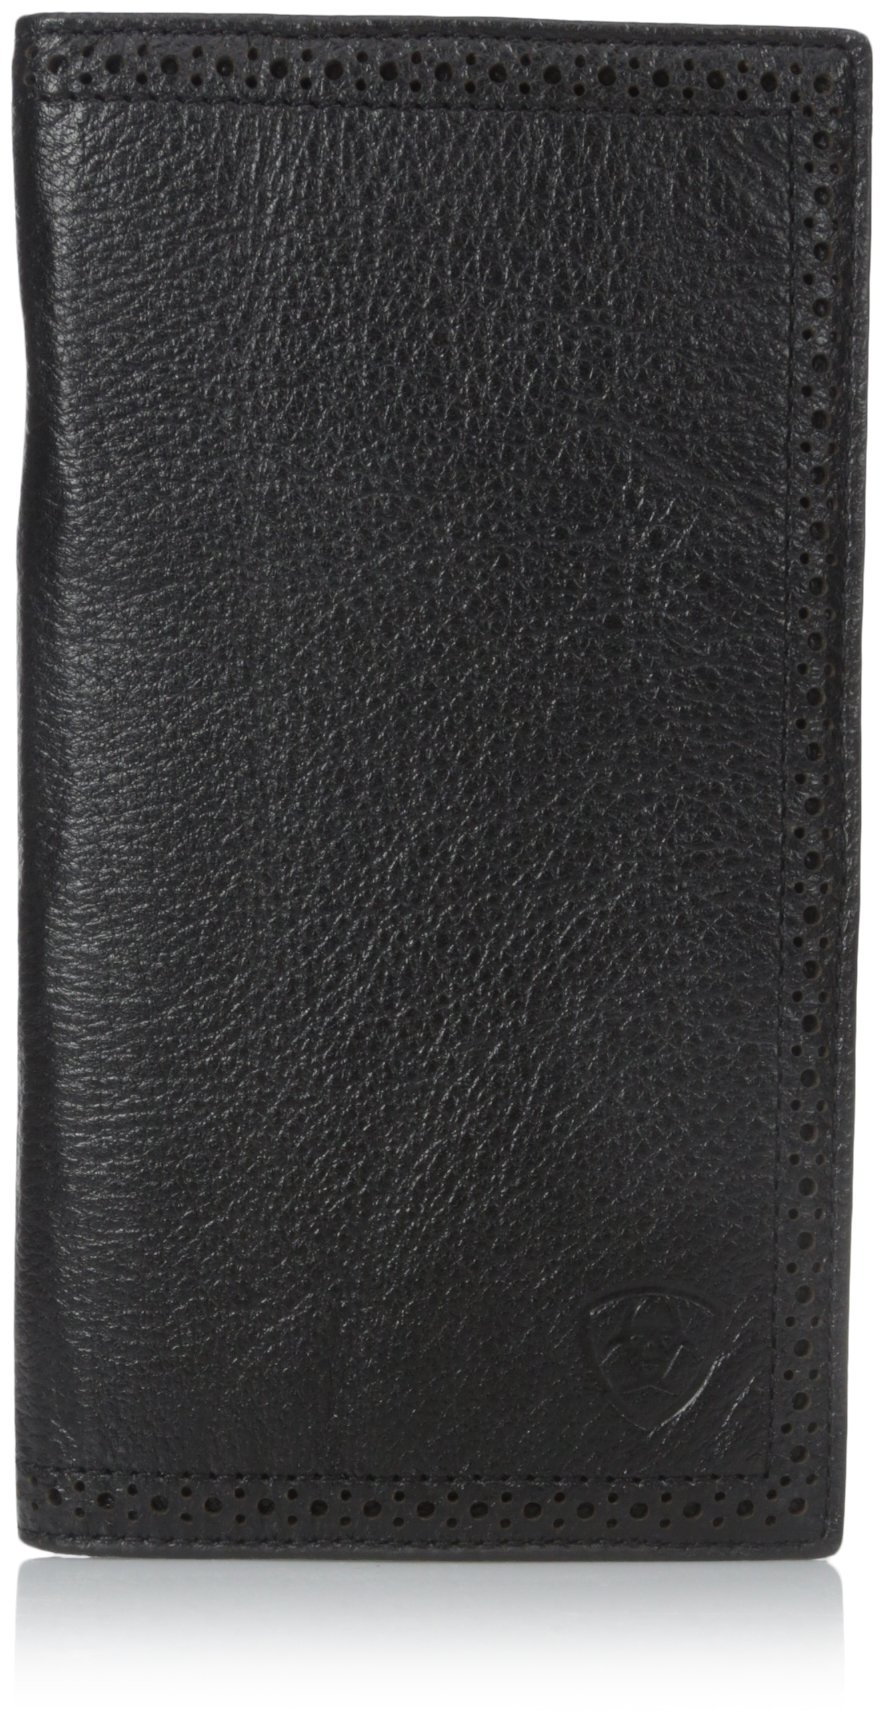 Ariat Ariat Shield Perforated Edge Rodeo Wallet Wallet Black One Size